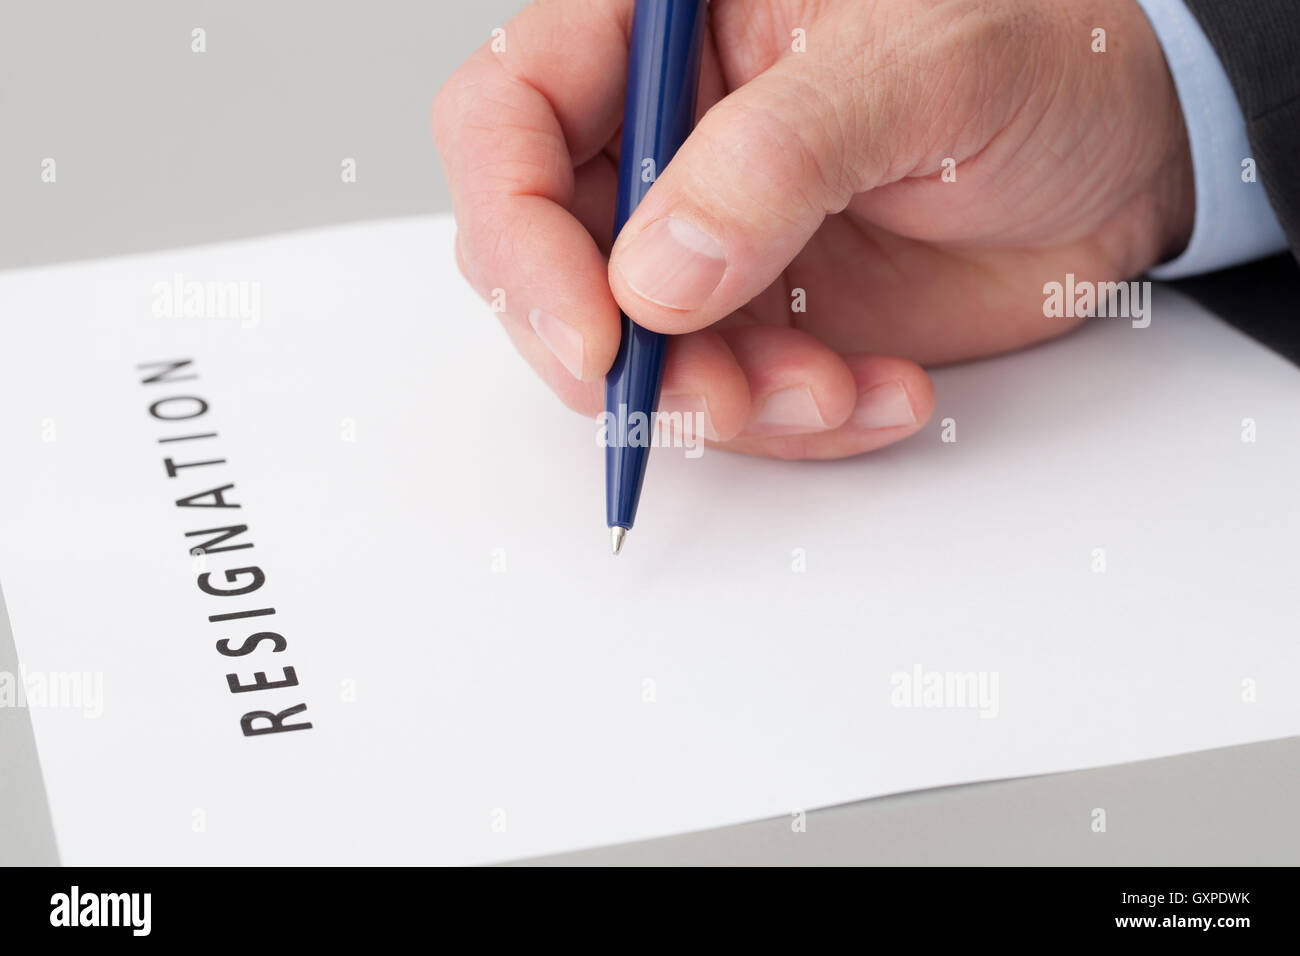 Man with a pen in the hand, writing a letter of resignation on a table - Stock Image